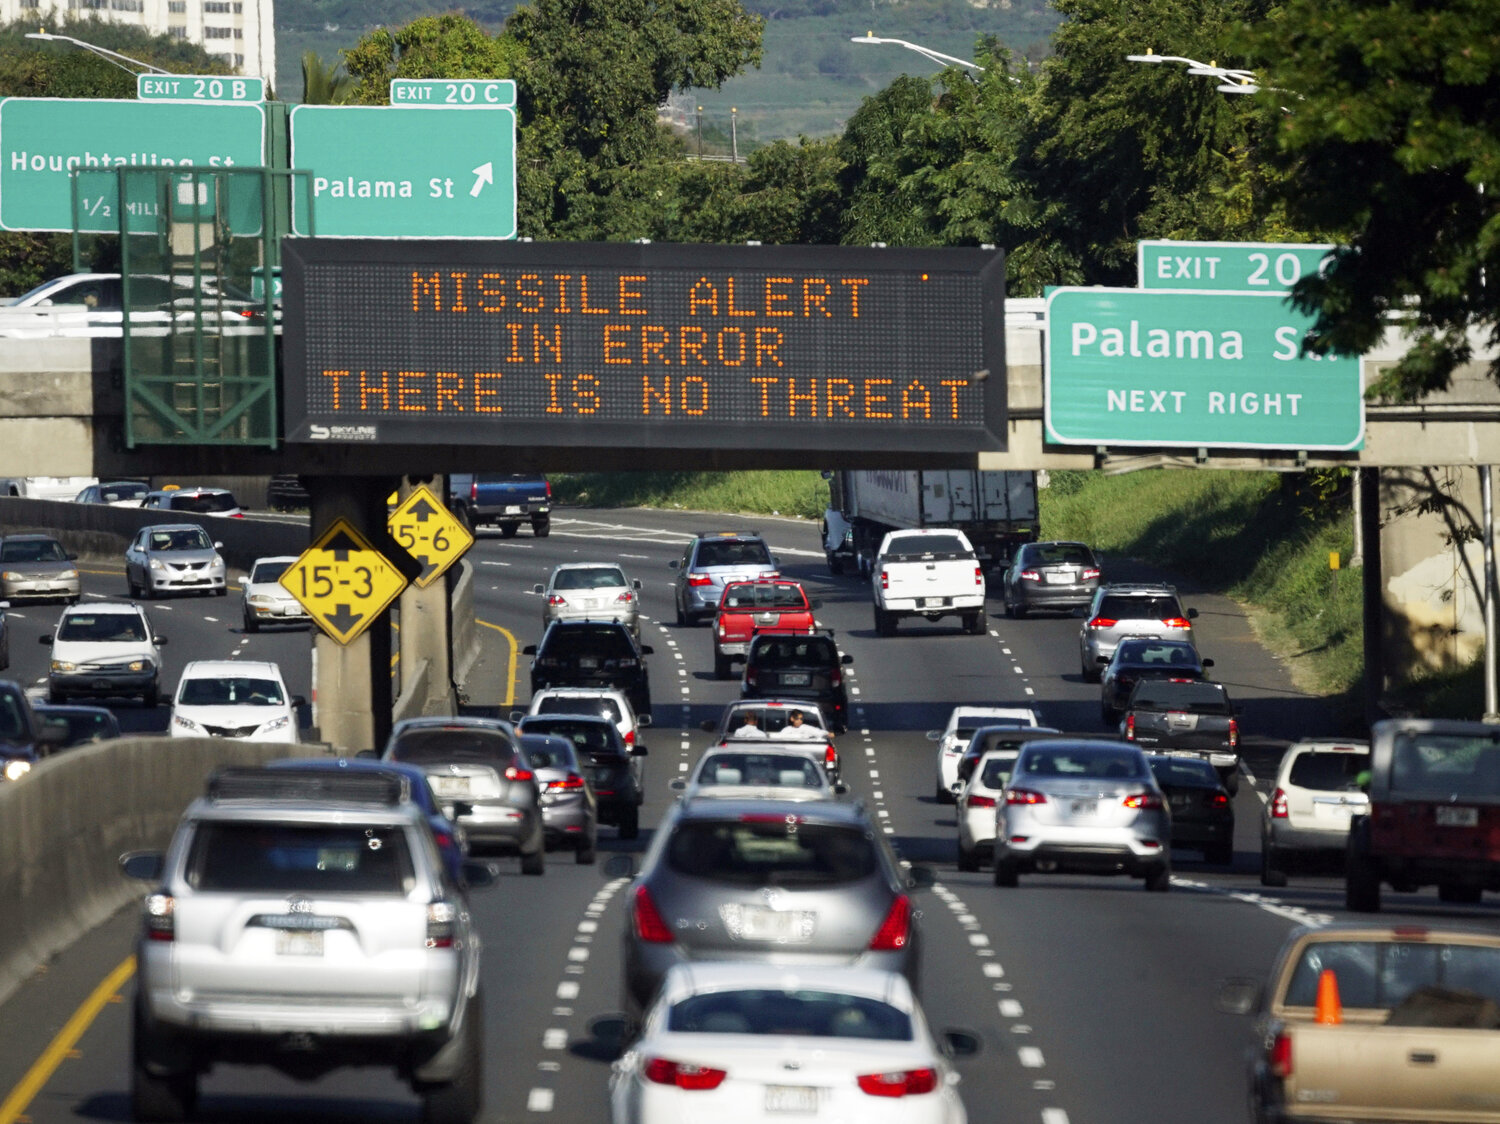 Hawaii Missile Drill Stated 'This Is Not A Drill,' Resulting In False Alert